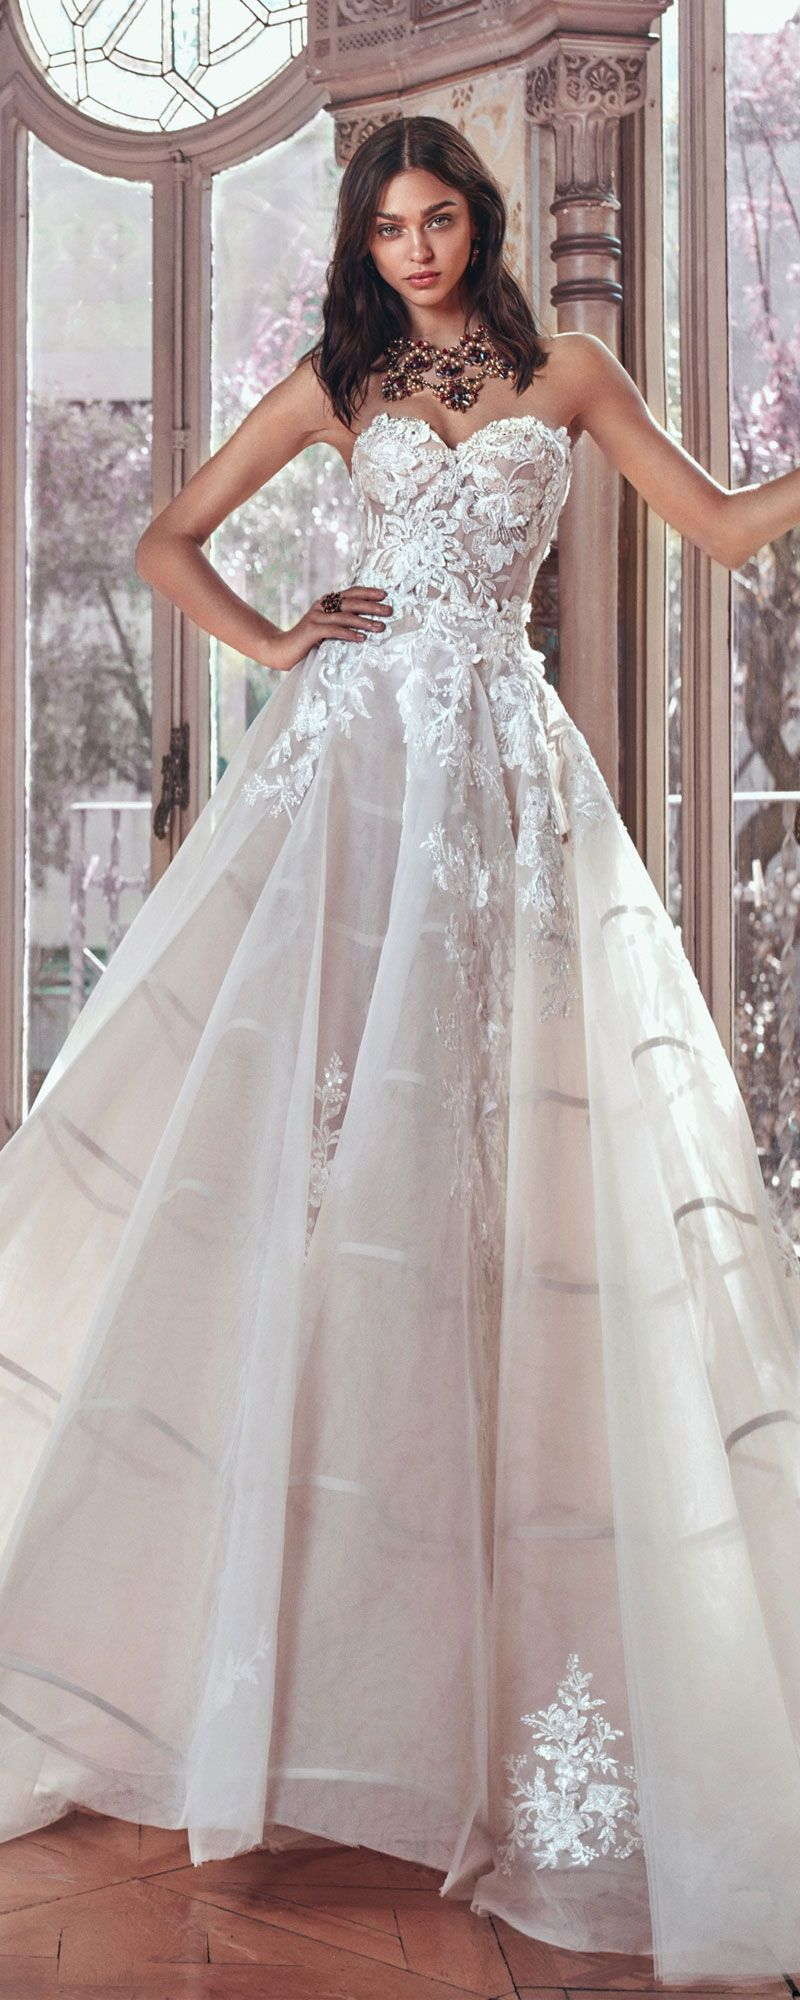 ab7b9b40699 Galia Lahav Spring 2018 Bridal Collection